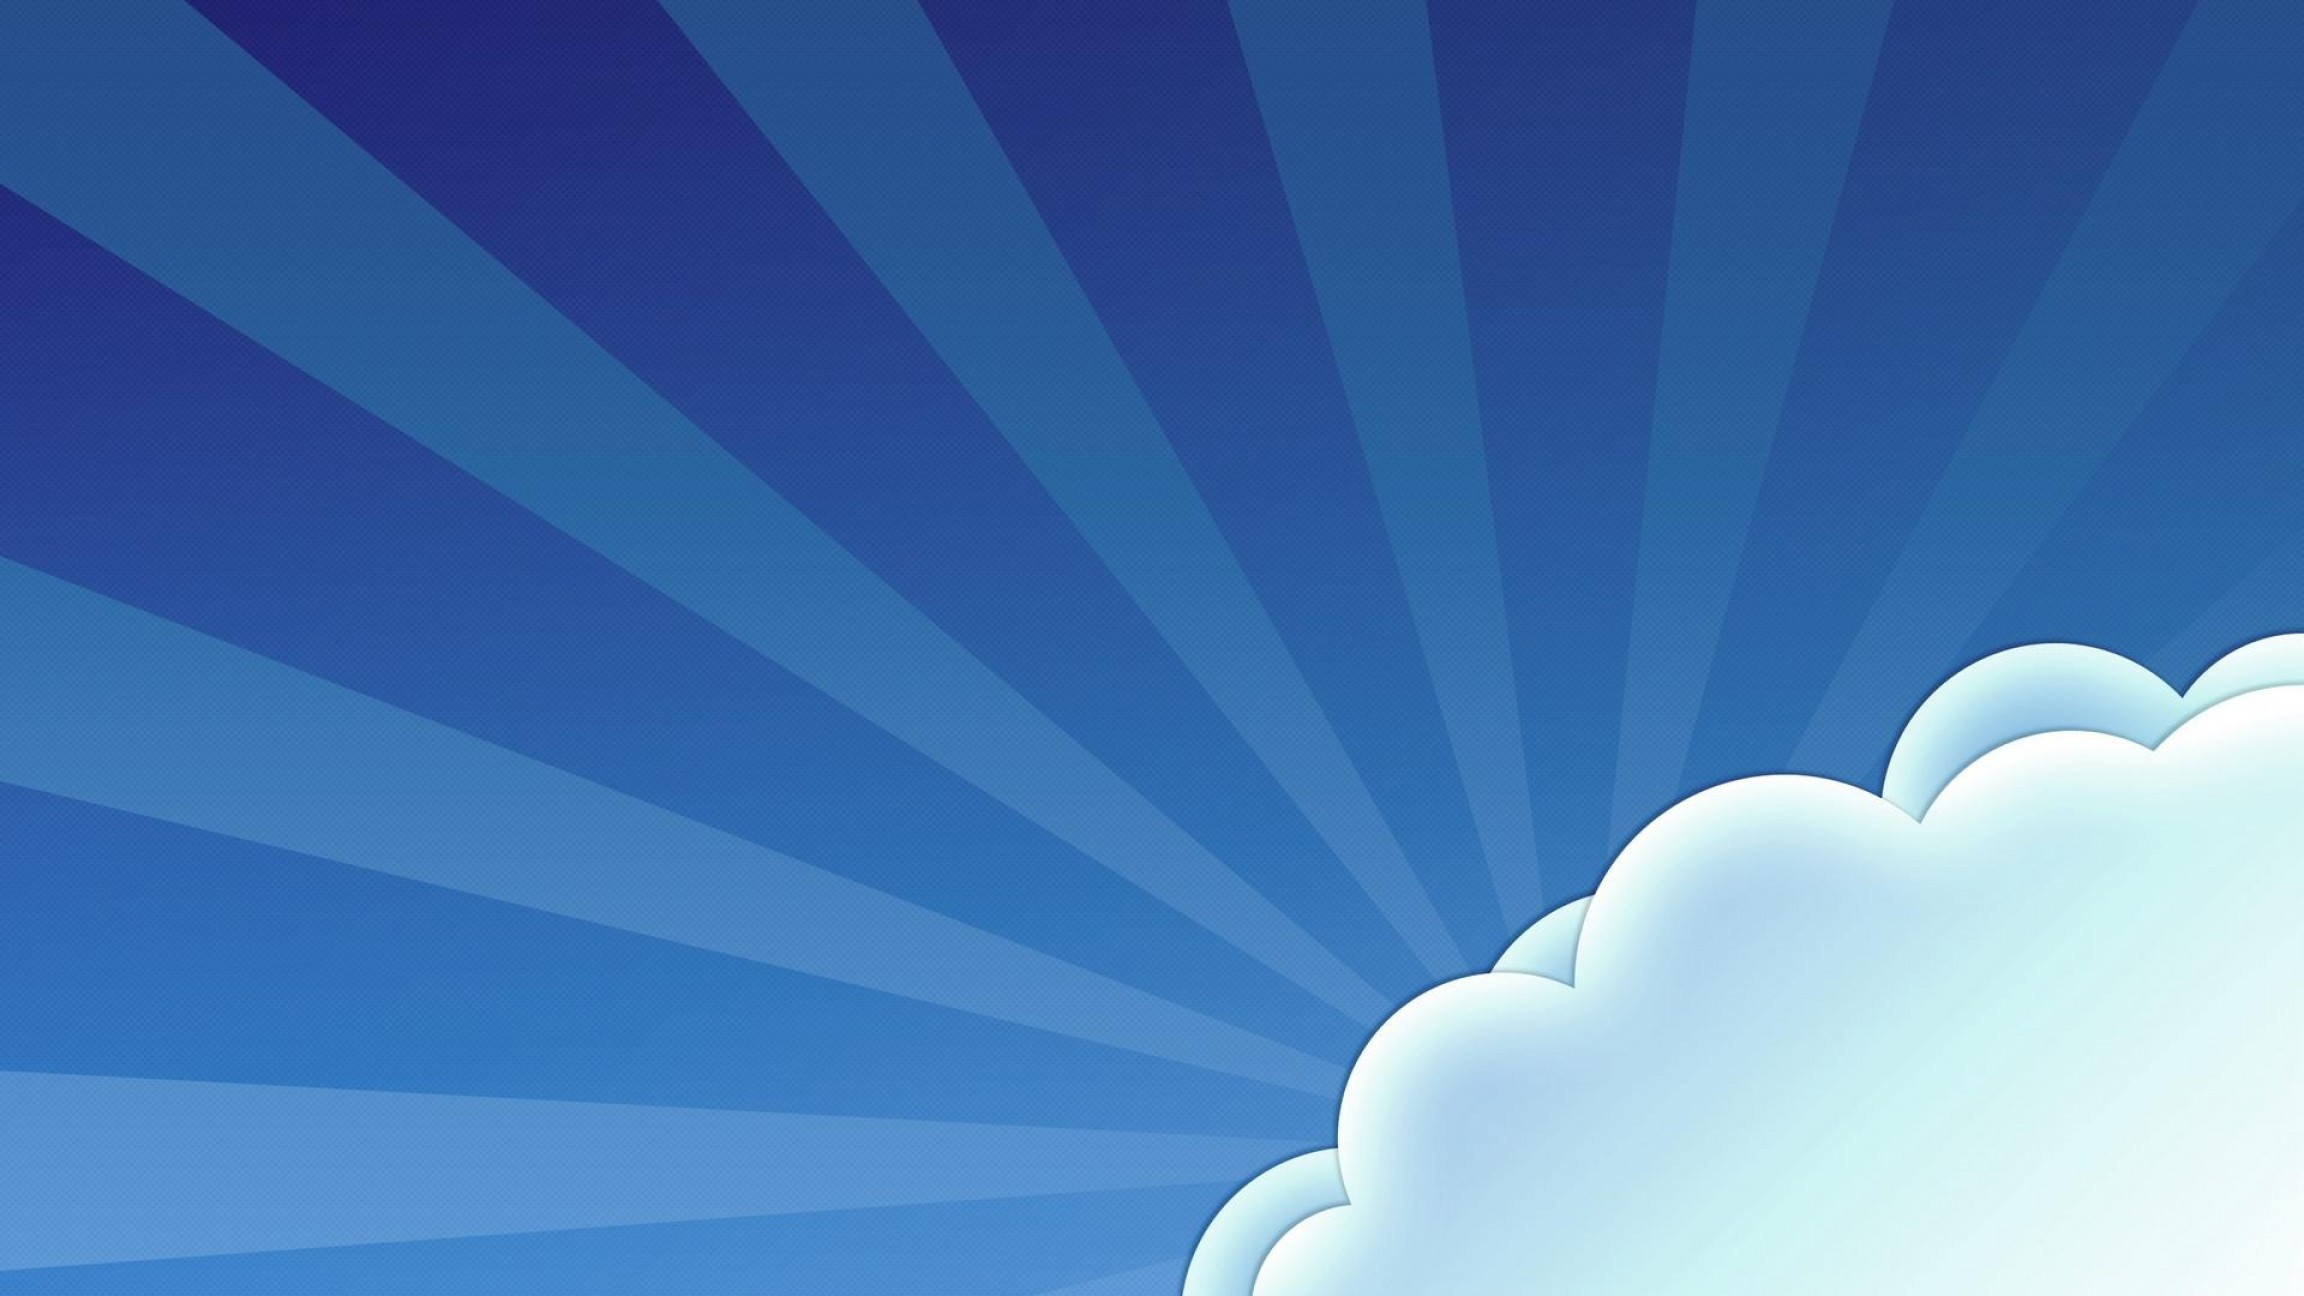 Clouds Backgrounds Vector: Vector Blue Sky And White Clouds Desktop Backgrounds X